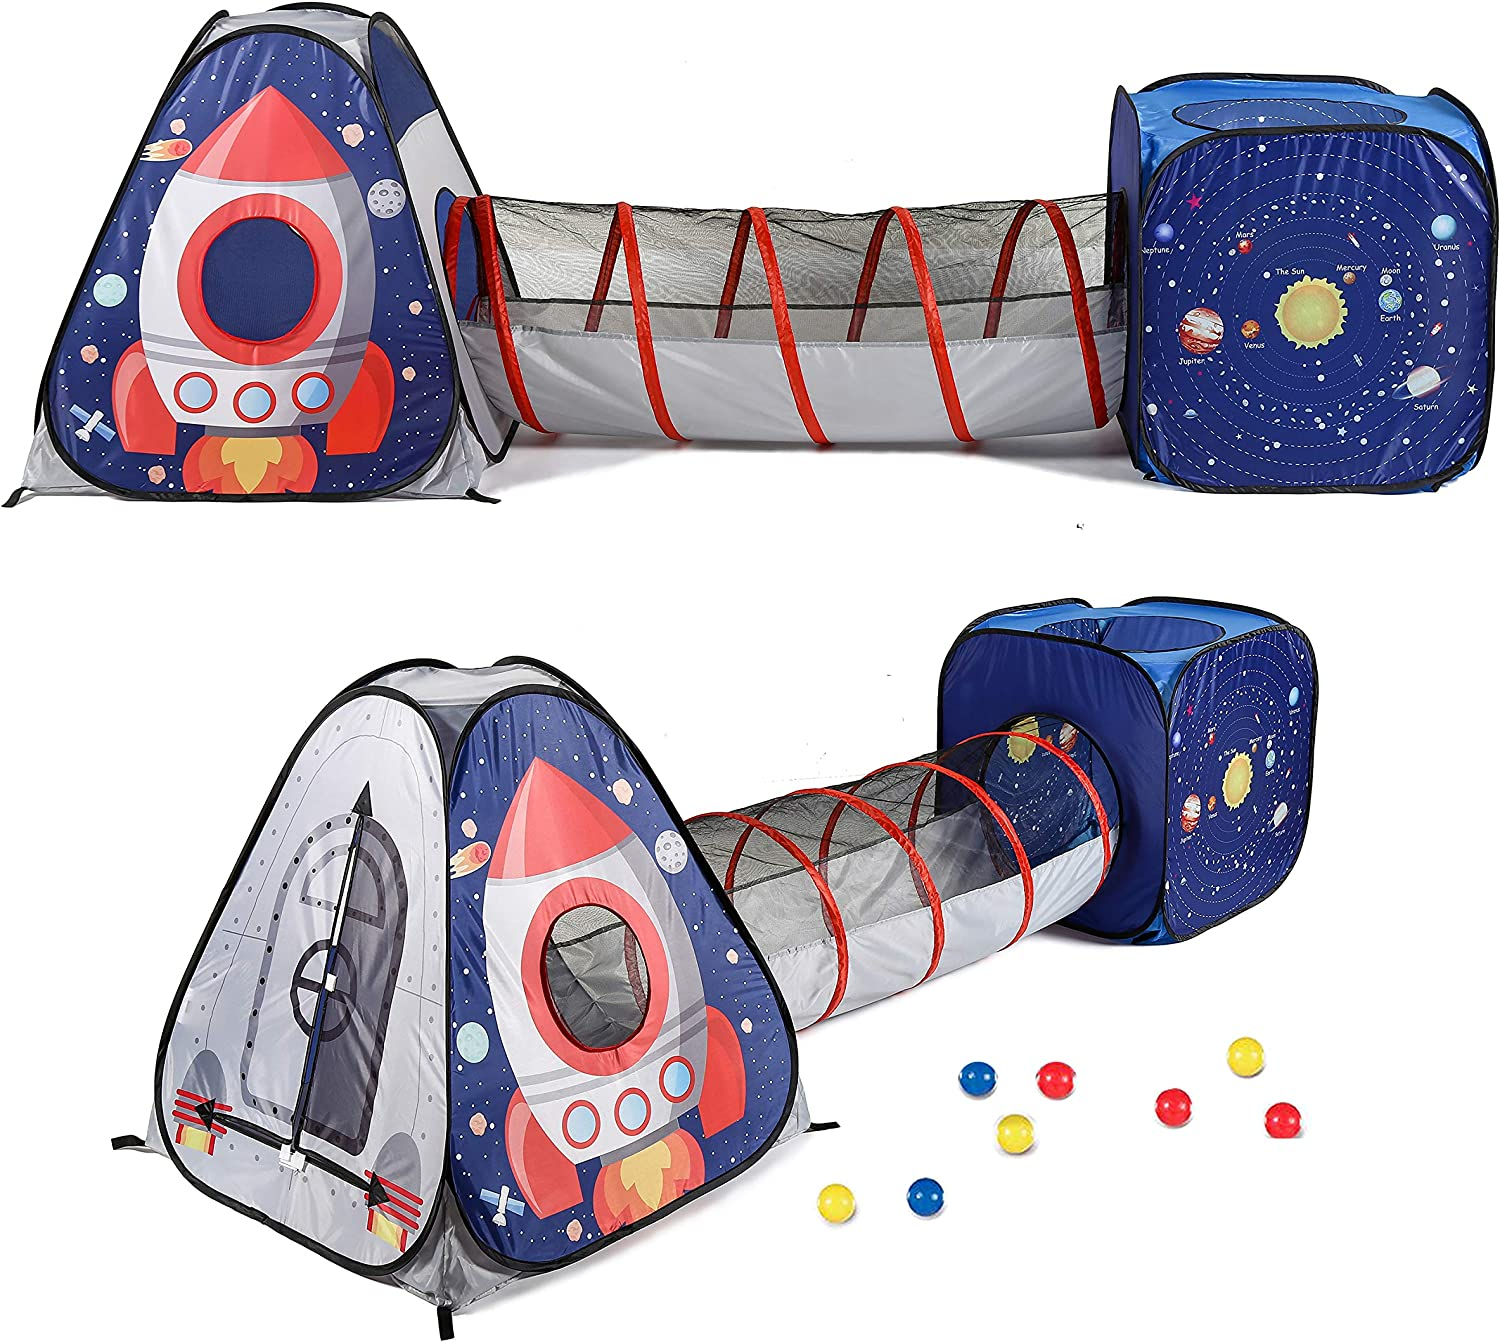 UTEX 3pc Space Astronaut Kids Play Tent, Pop Up Play Tents with Tunnels for Kids, Boys, Girls, Babies and Toddlers, Indoor/Outdoor Playhouse –Stem Inspired Design W/Solar System & Planet